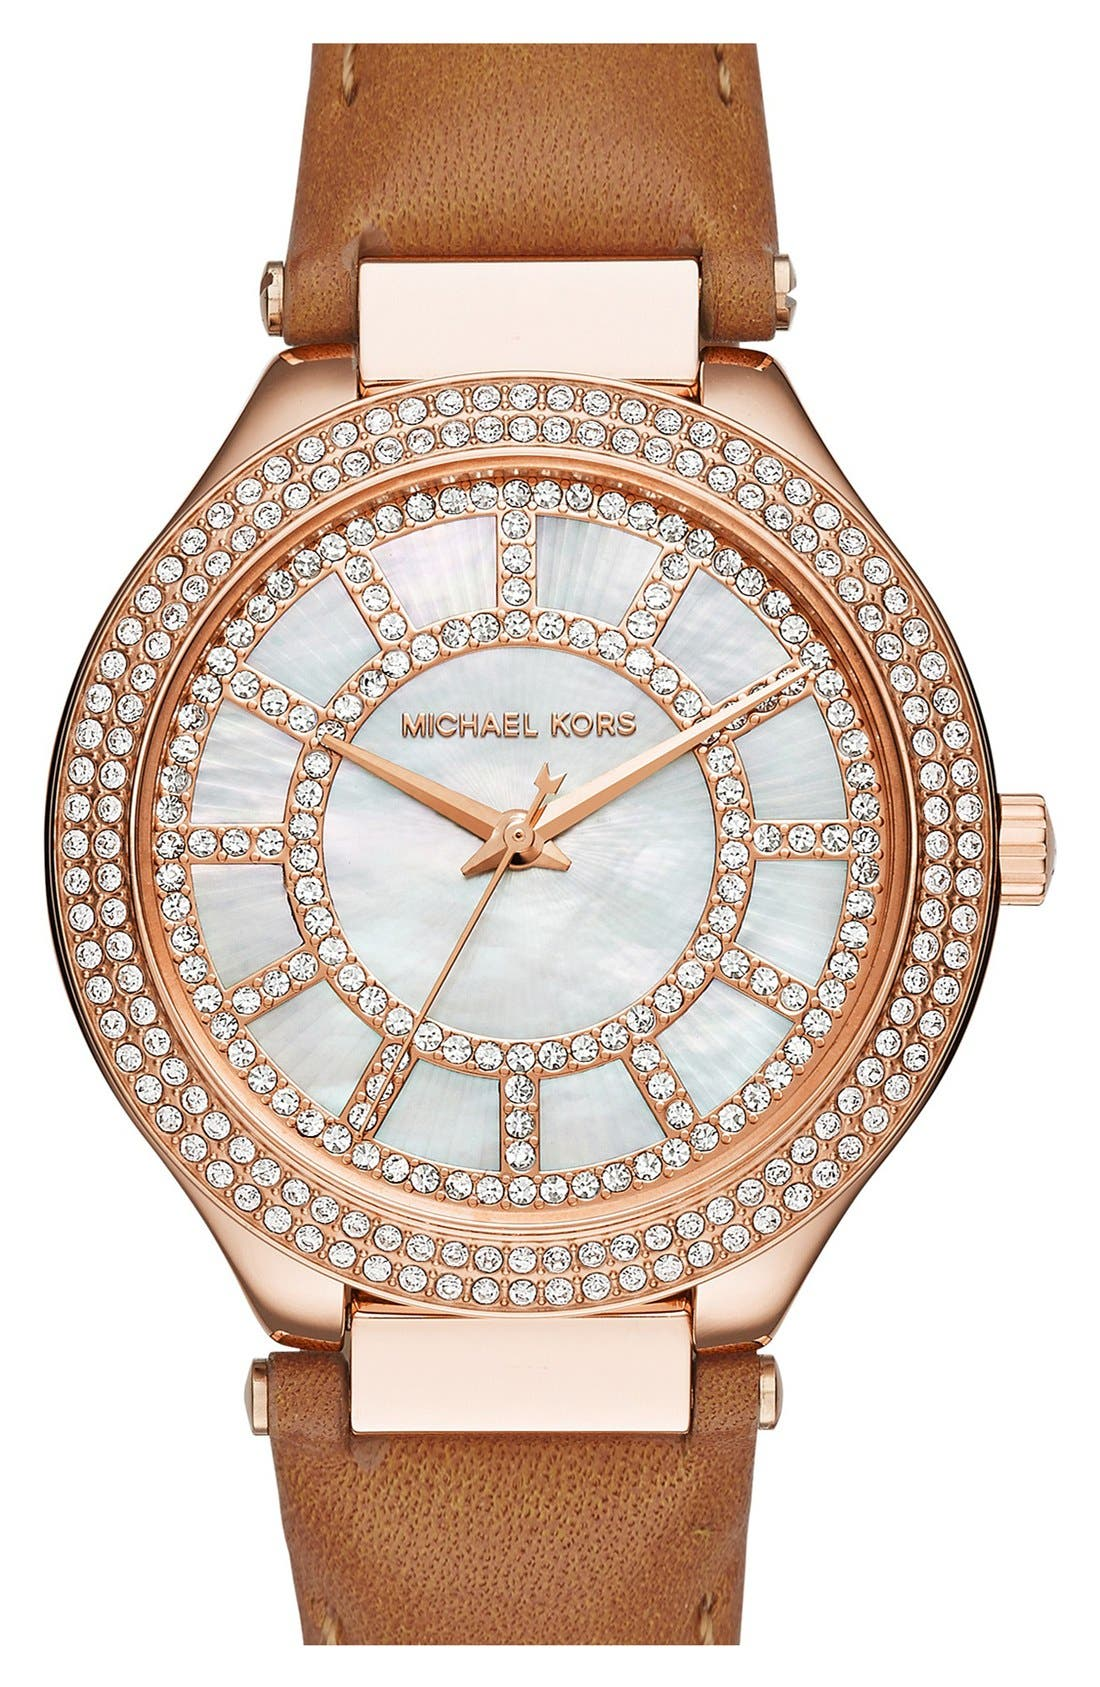 Main Image - Michael Kors 'Kerry' Crystal Accent Leather Strap Watch, 38mm